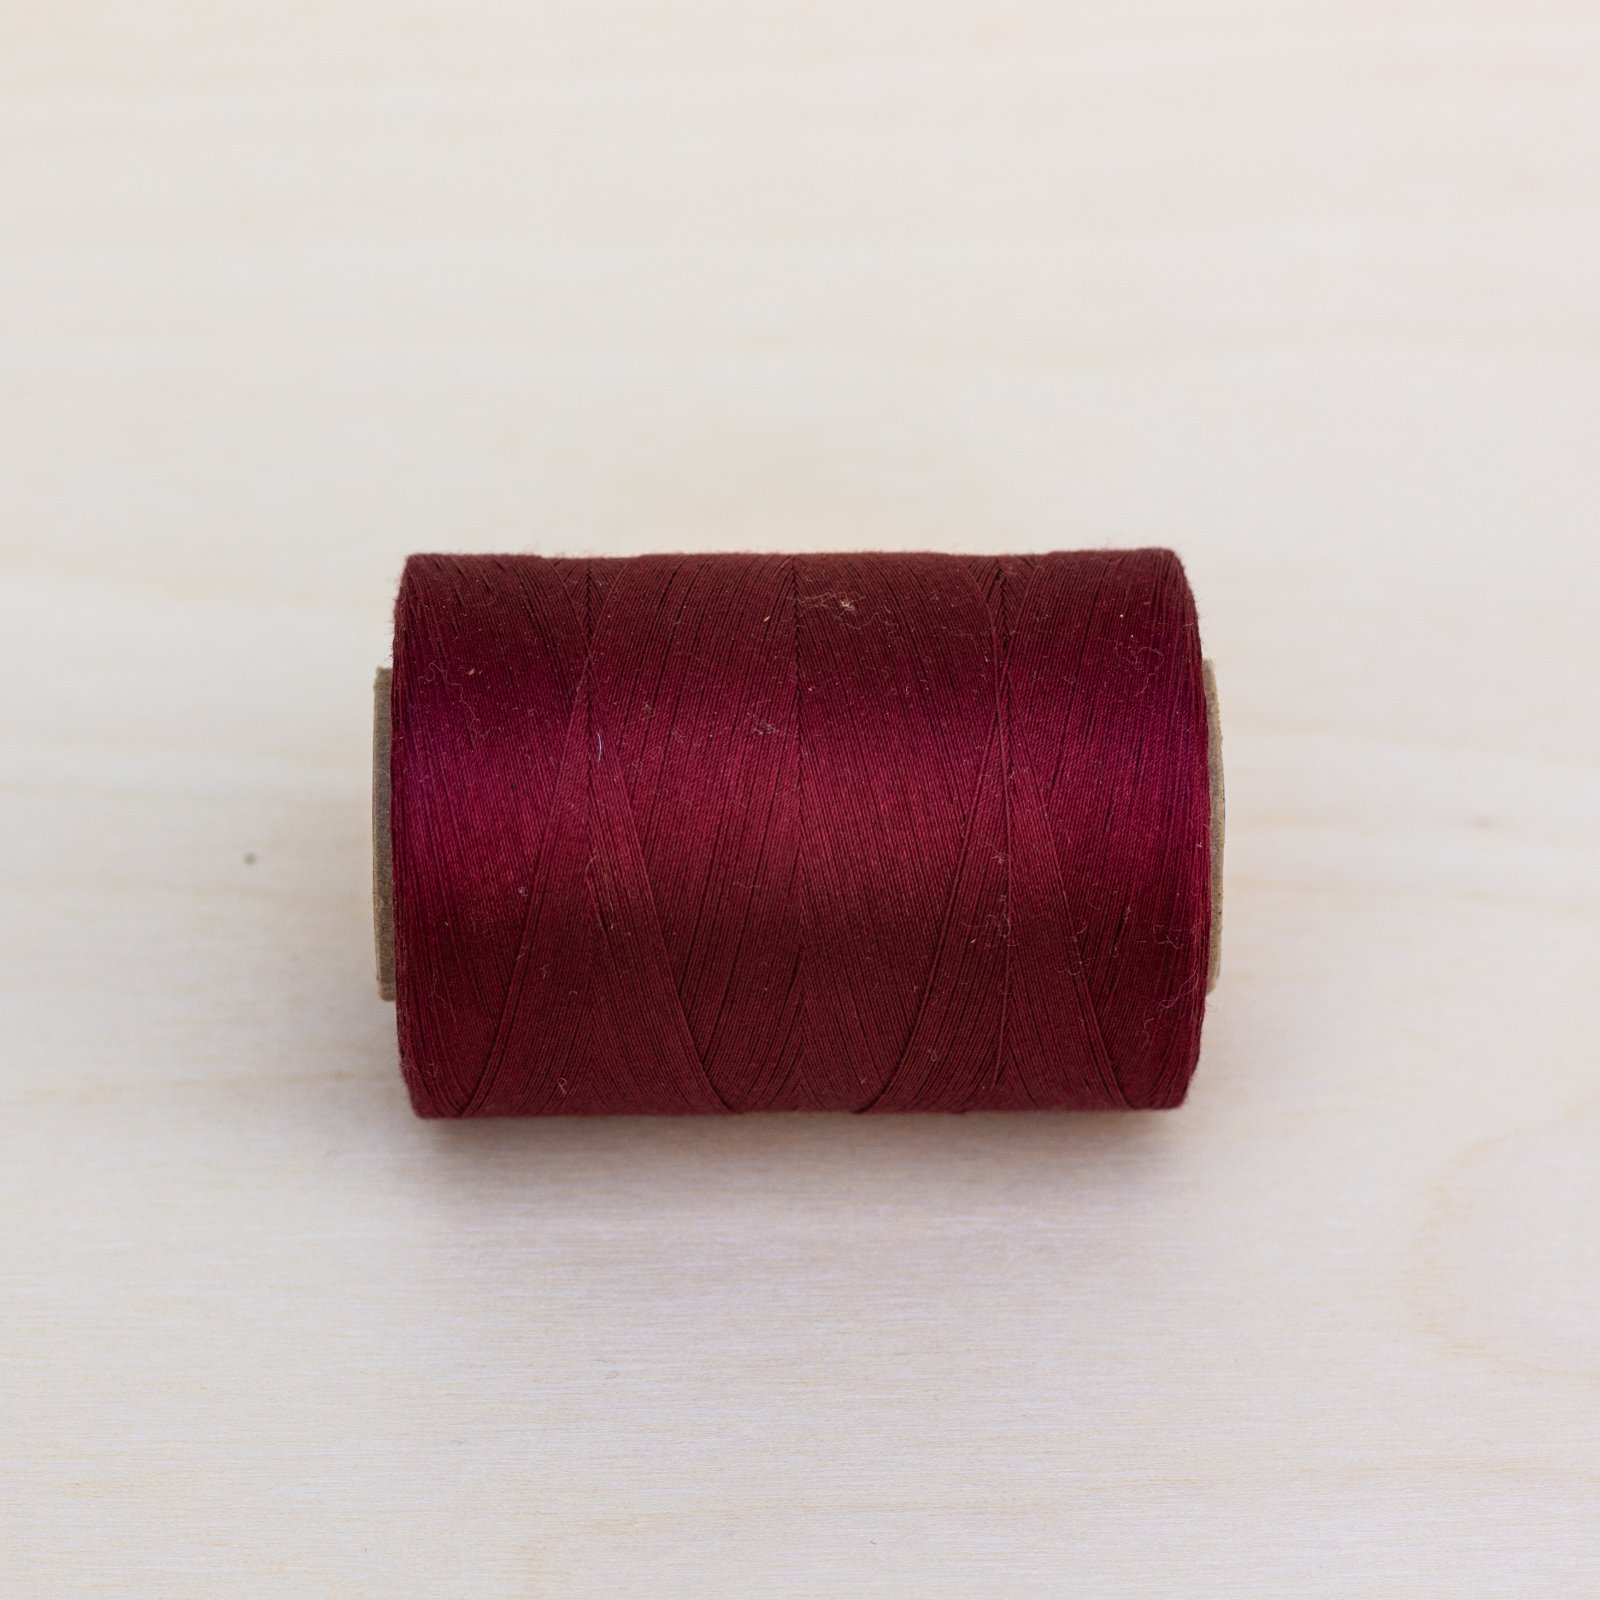 39B - Barberry Red Quilting Thread 1200yd